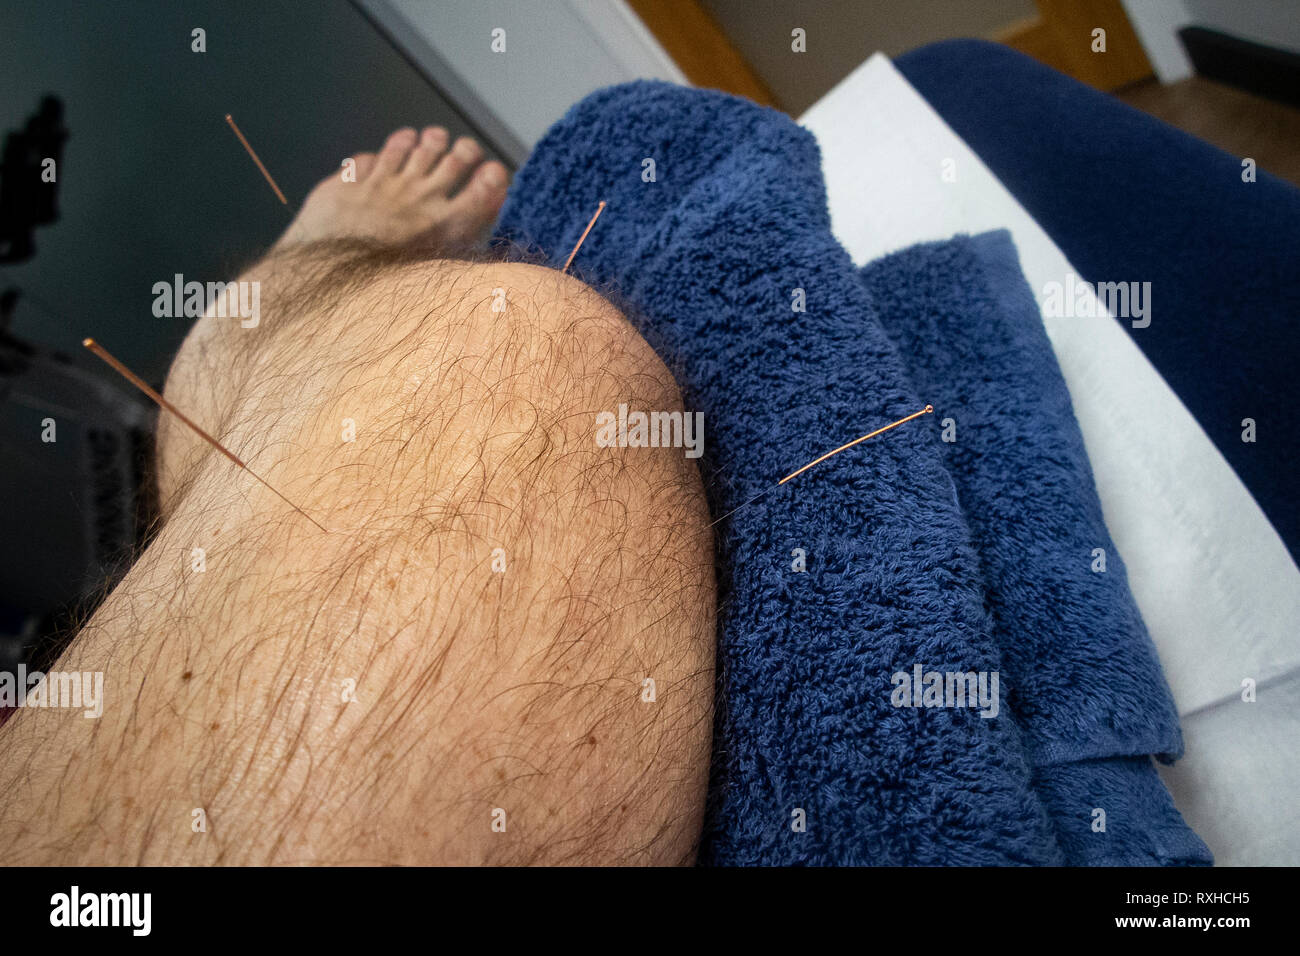 Acupuncture needles inserted in the leg of a man with an injured knee - Stock Image